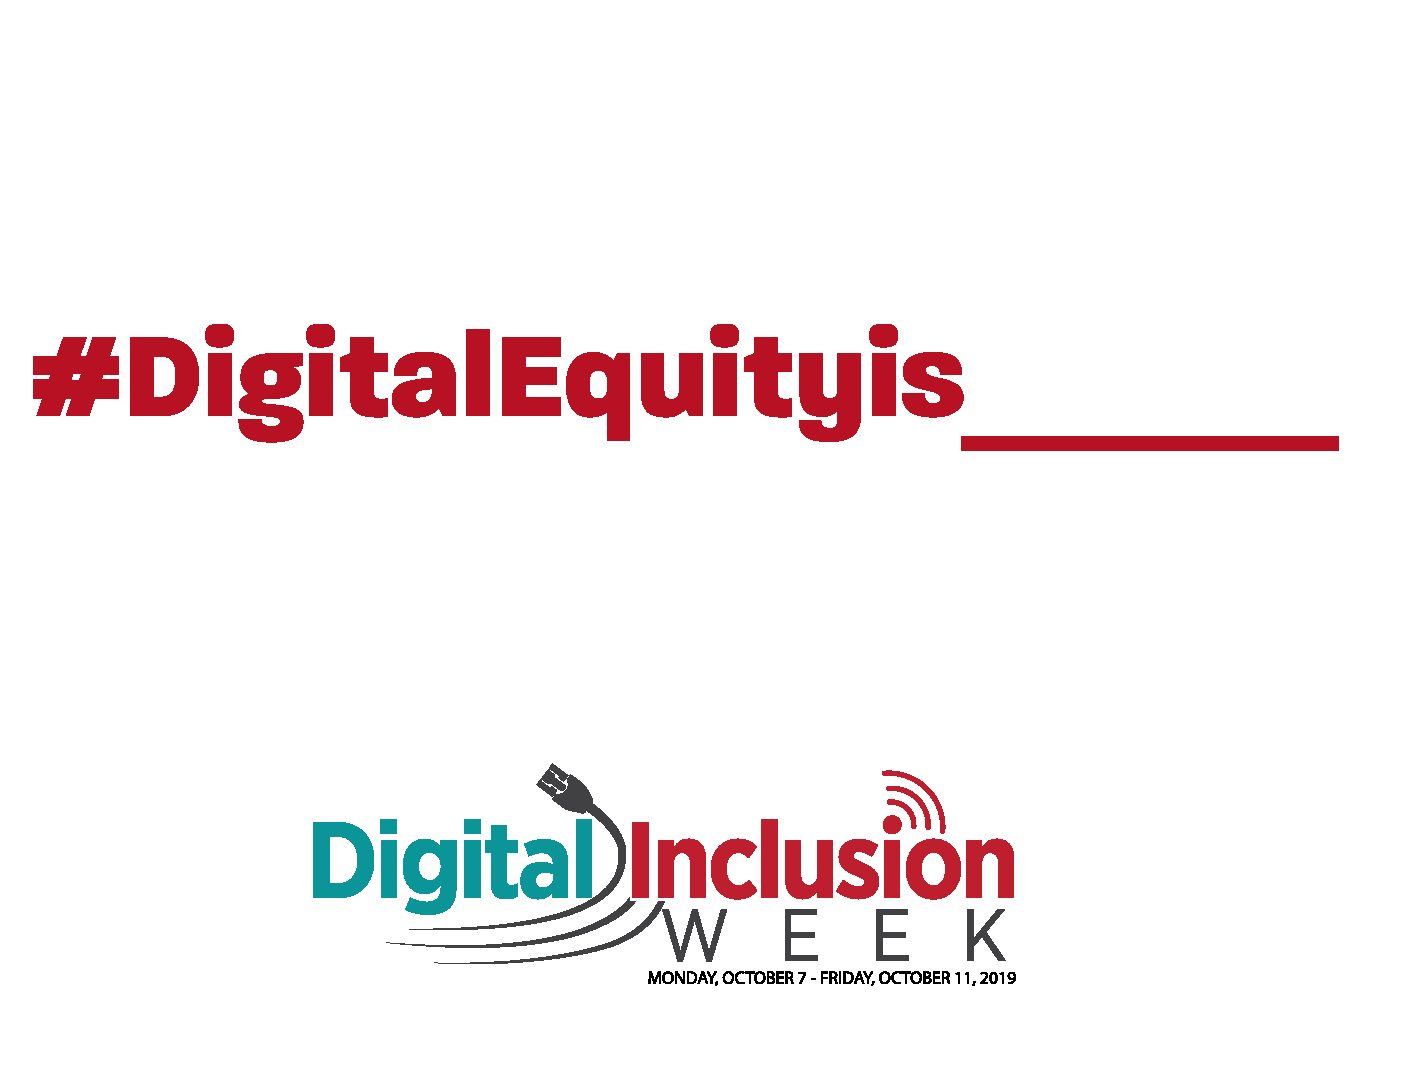 Digital Inclusion Week 2019